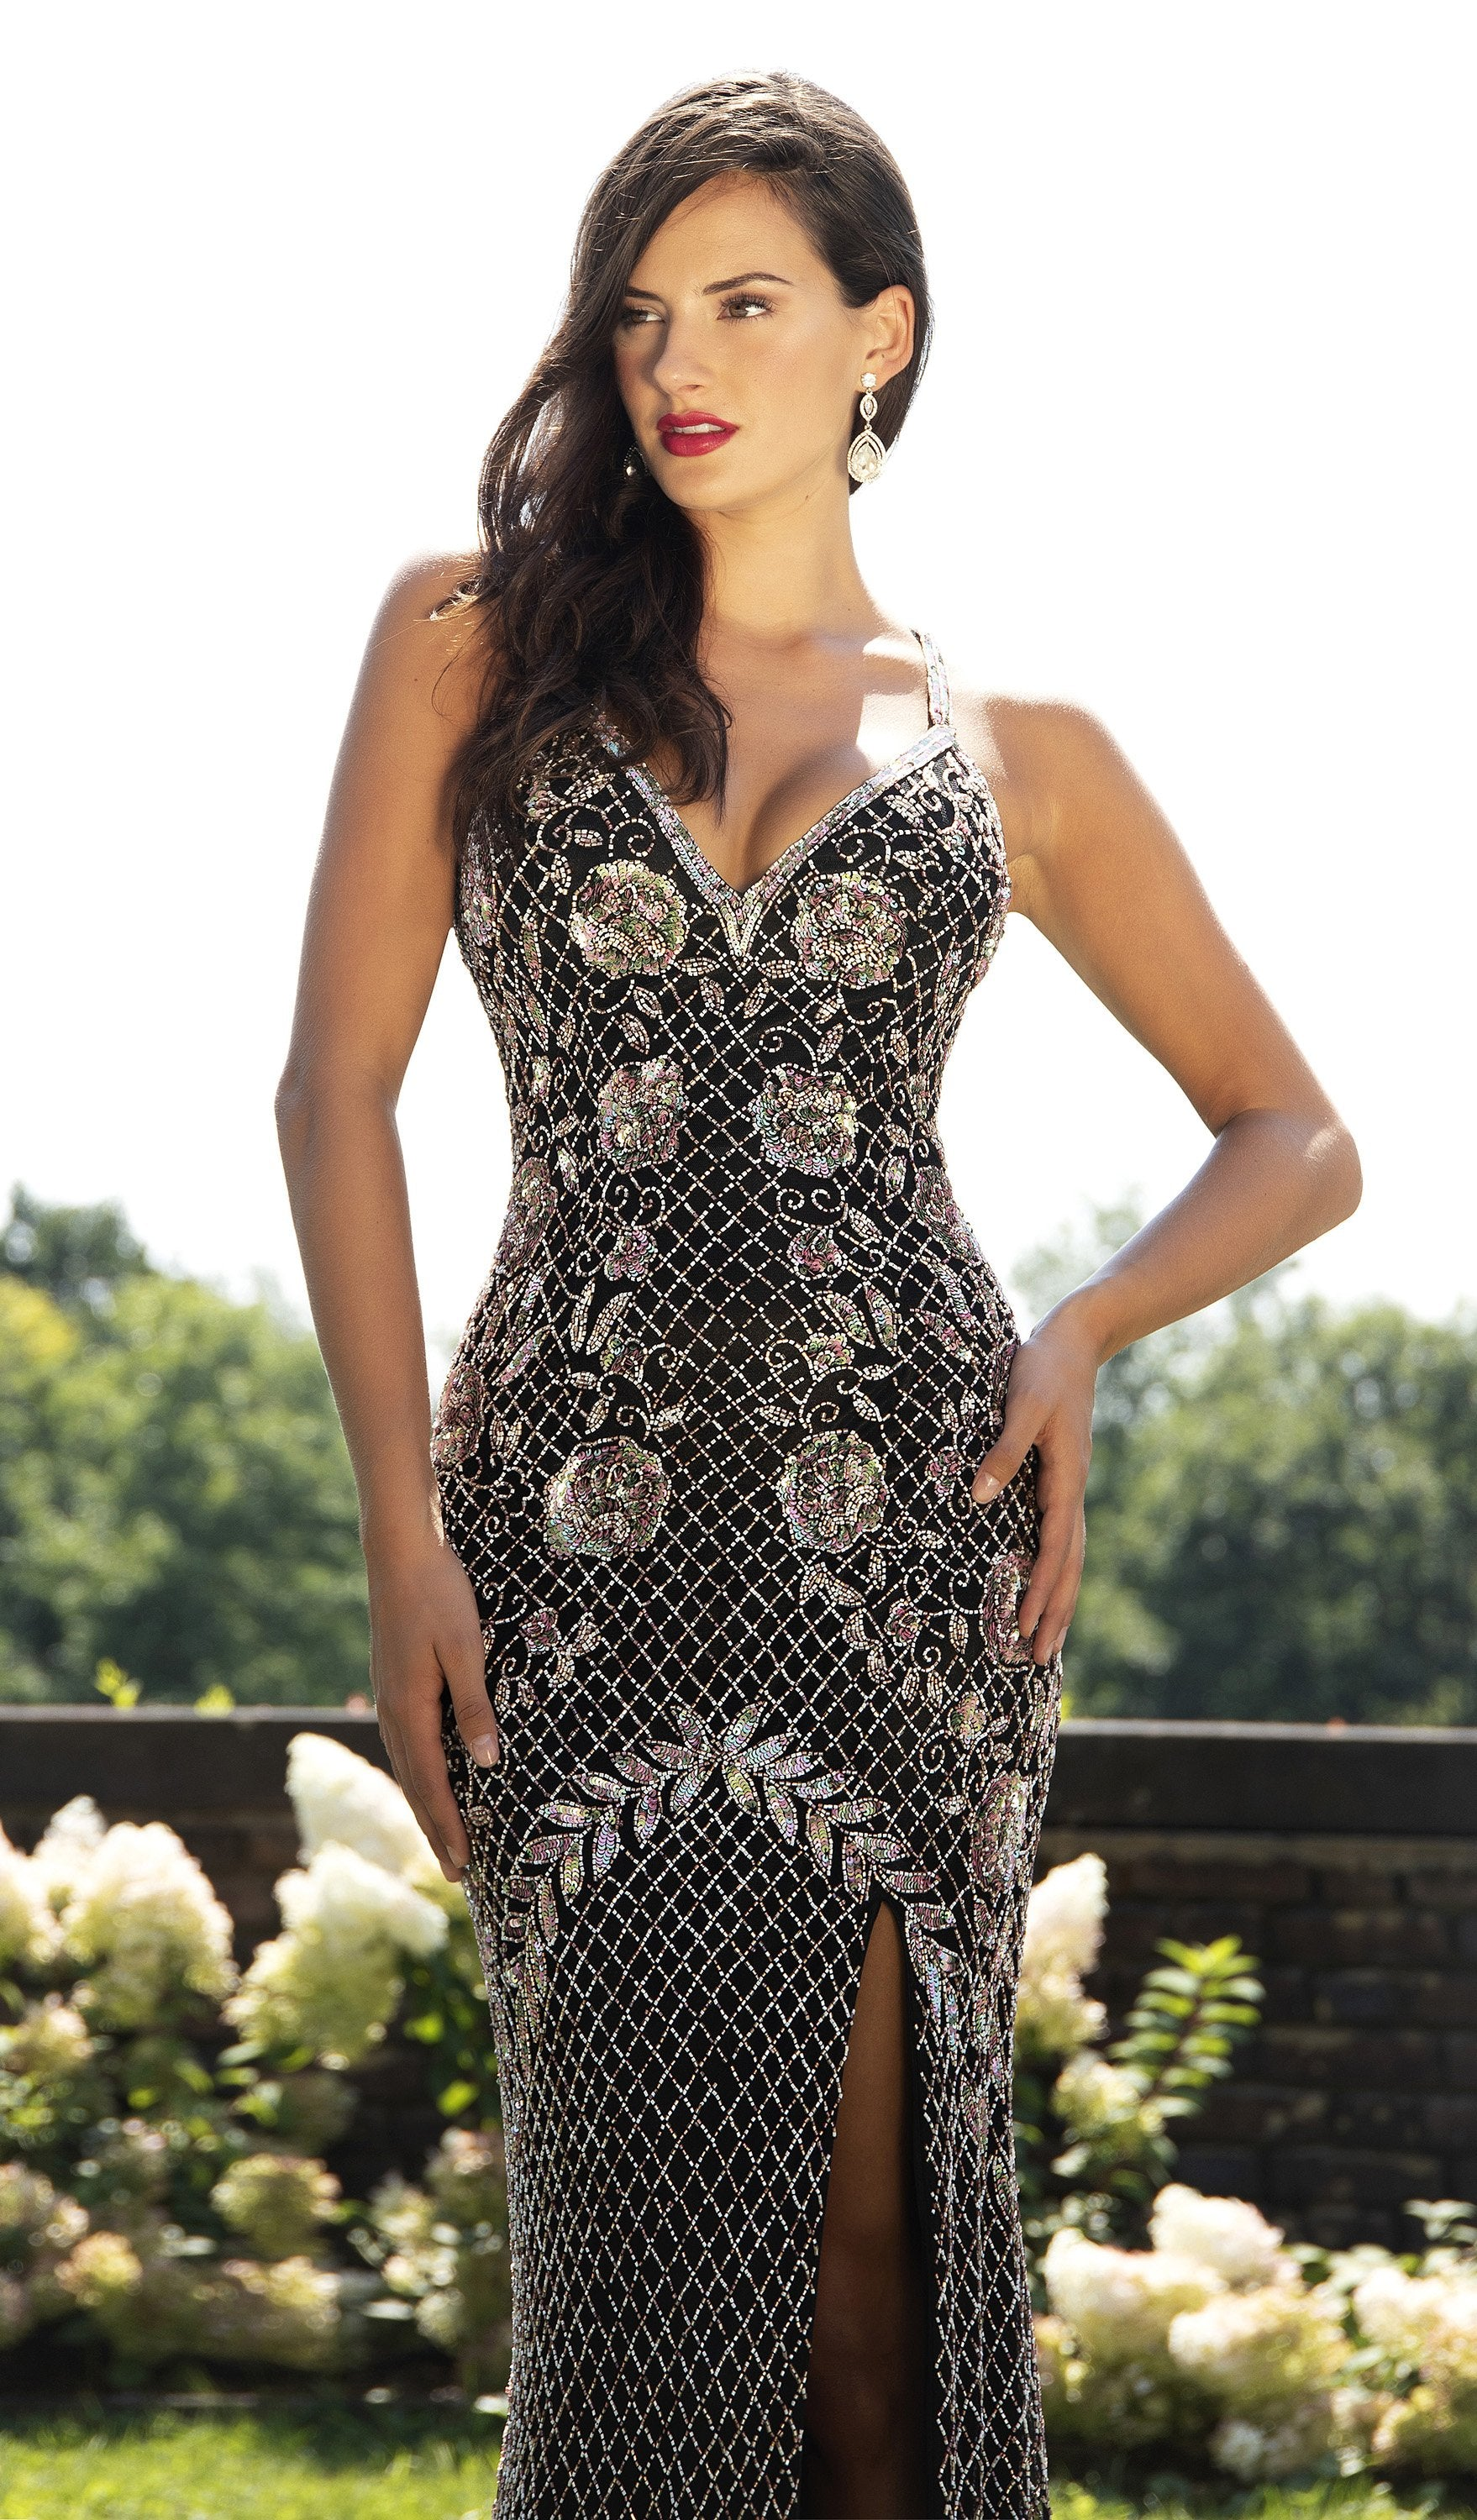 Primavera Couture - 3202 Embellished Plunging V-neck Trumpet Dress In Black and Multi-Color